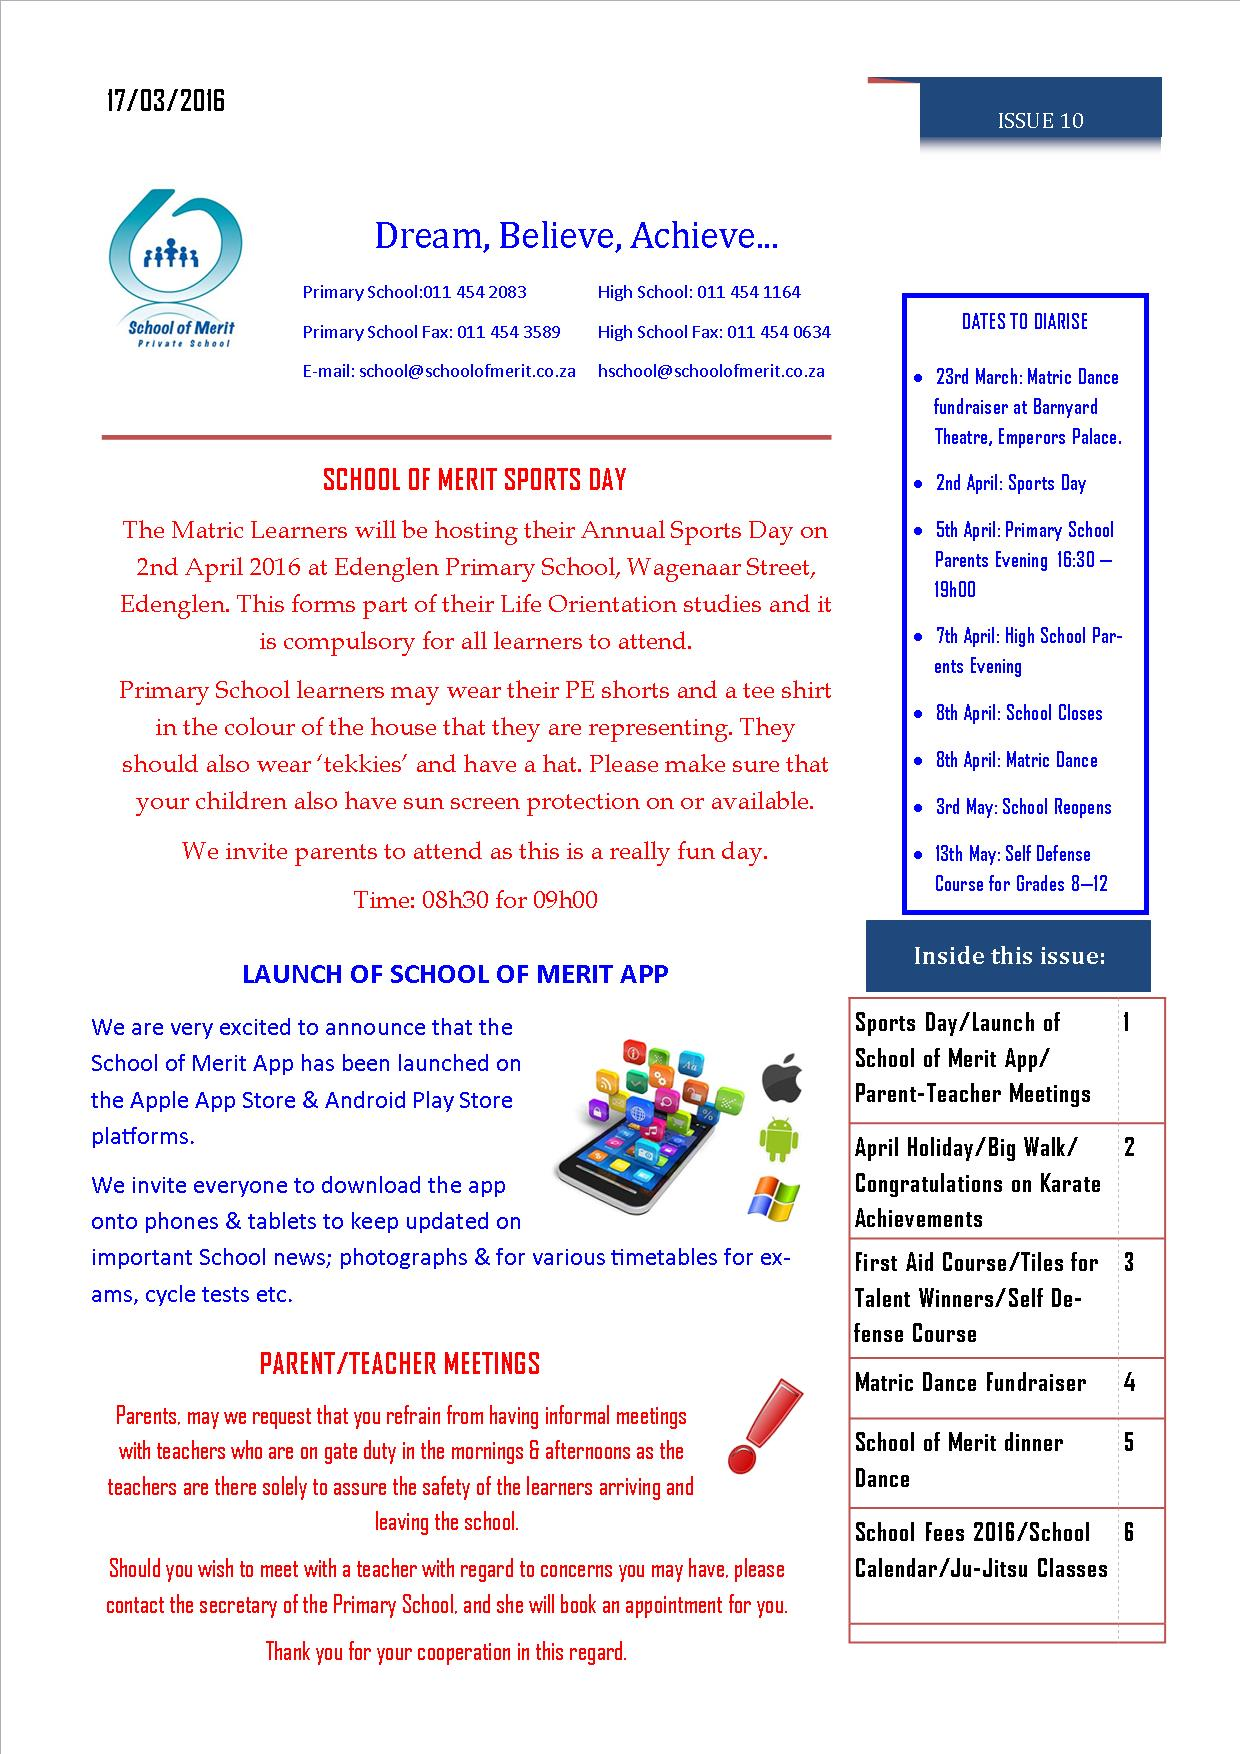 Newsletter 10 pg 1